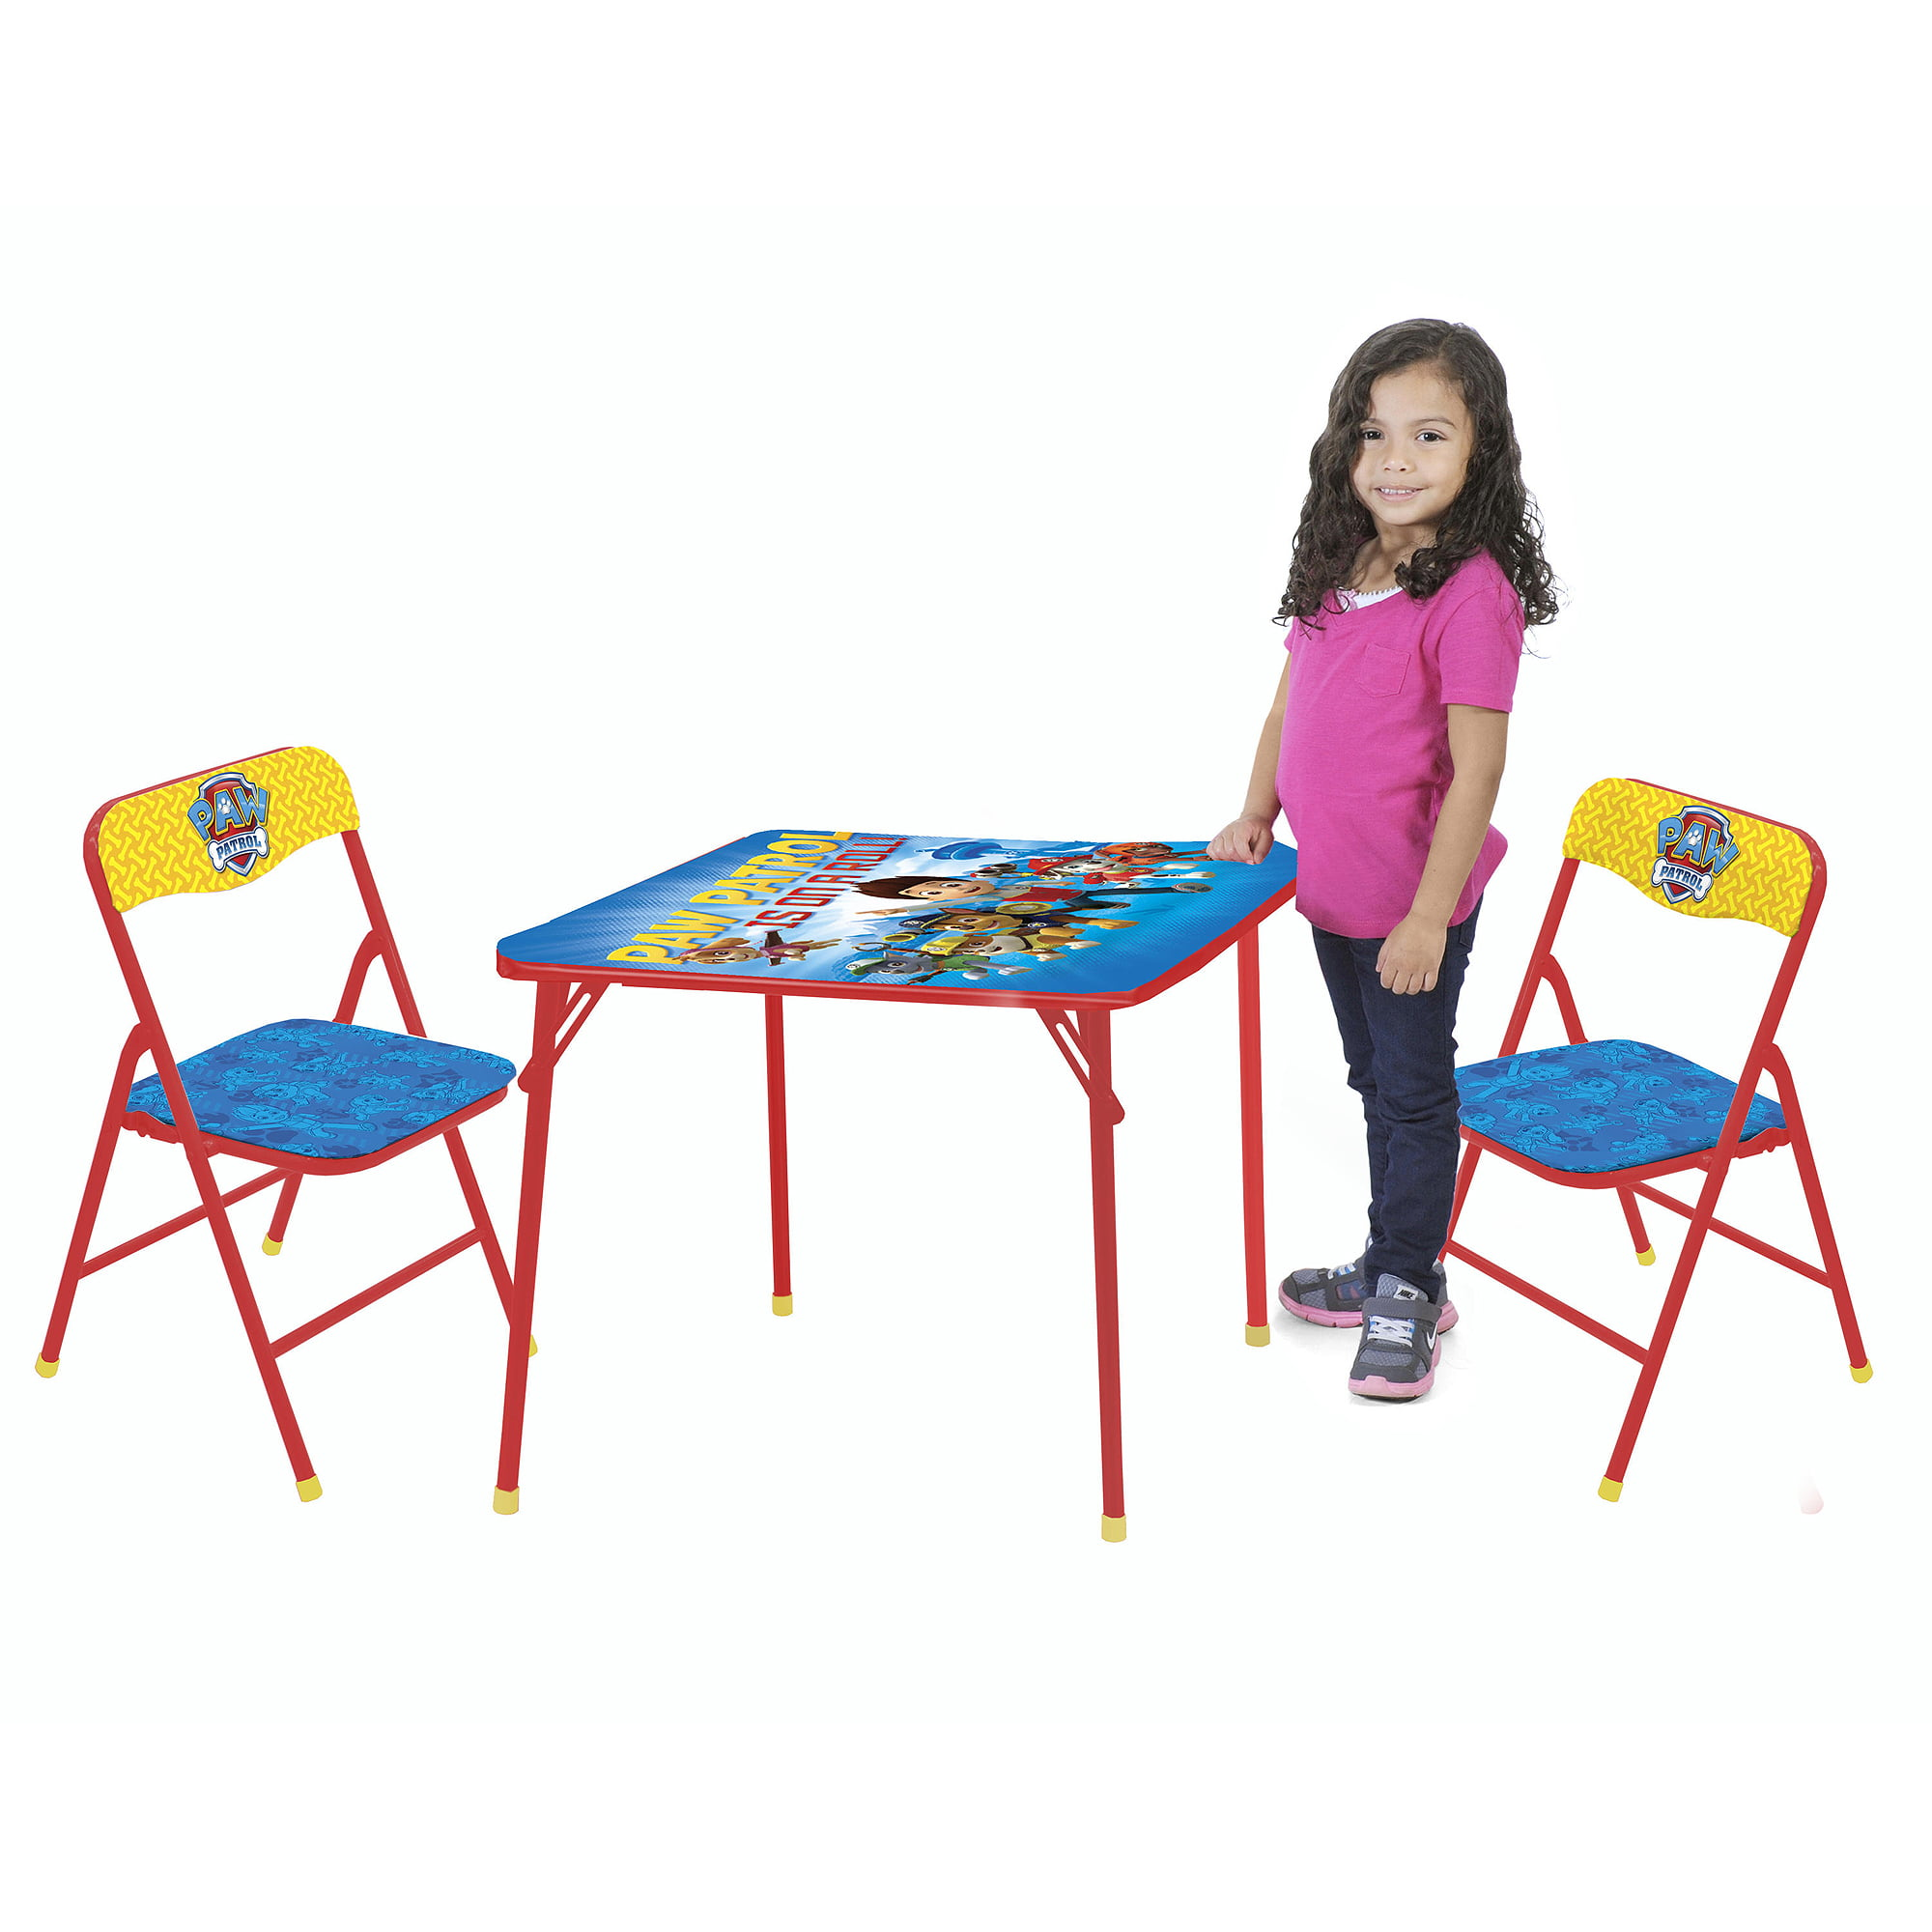 Superbe Nickelodeon Paw Patrol 3 Piece Table And Chair Set   Walmart.com